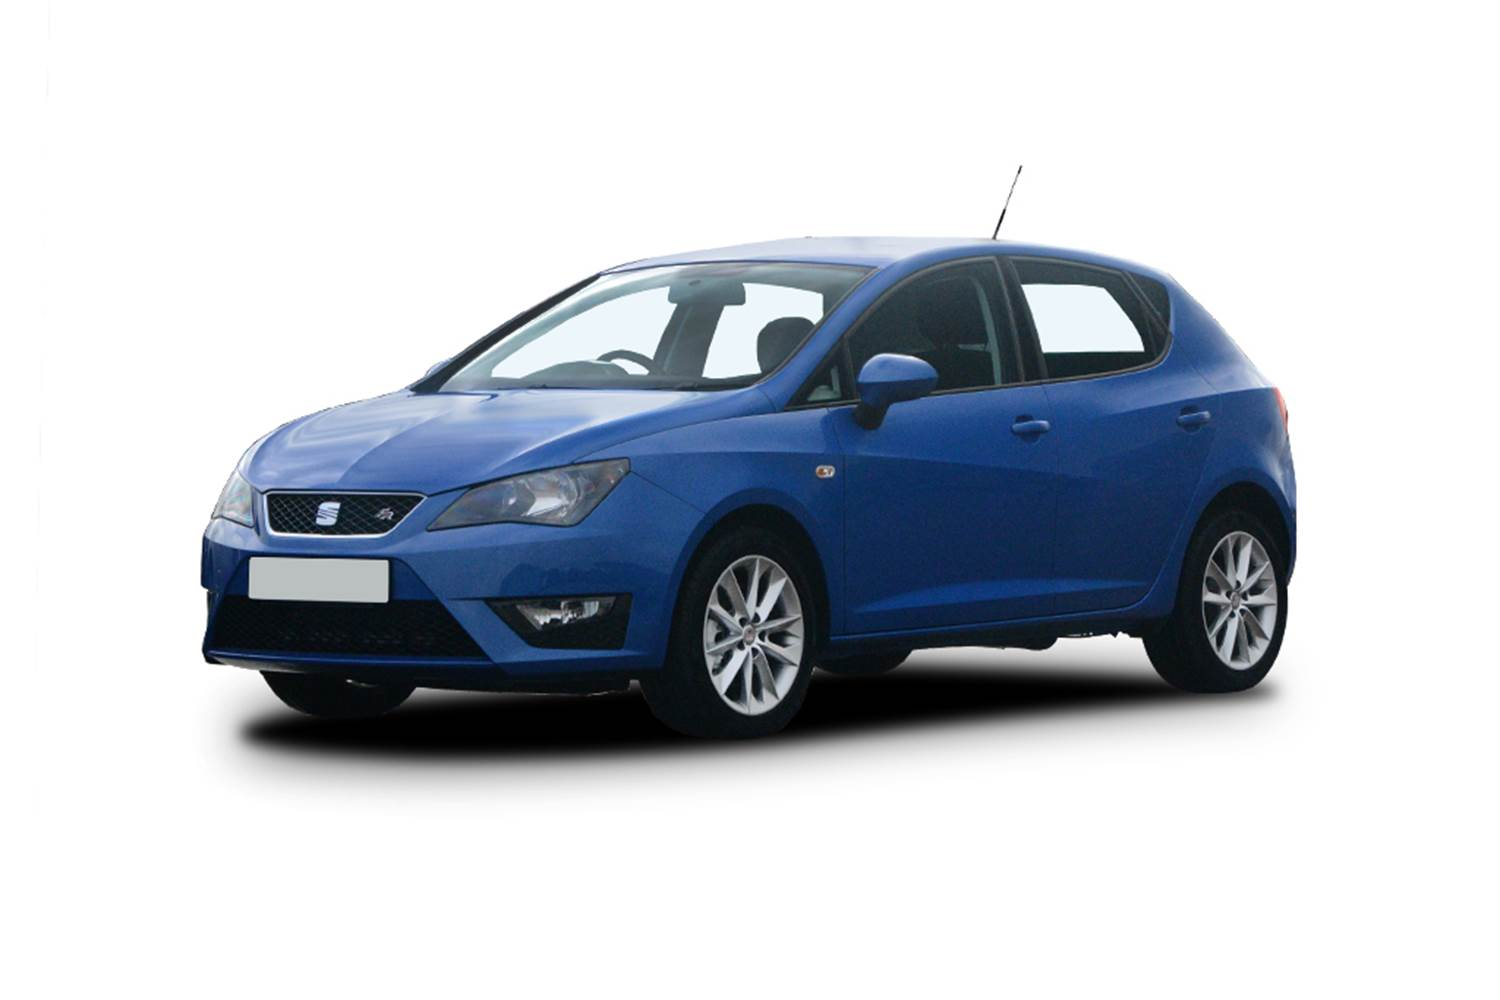 2012 seat ibiza hatchback pictures information and specs auto. Black Bedroom Furniture Sets. Home Design Ideas